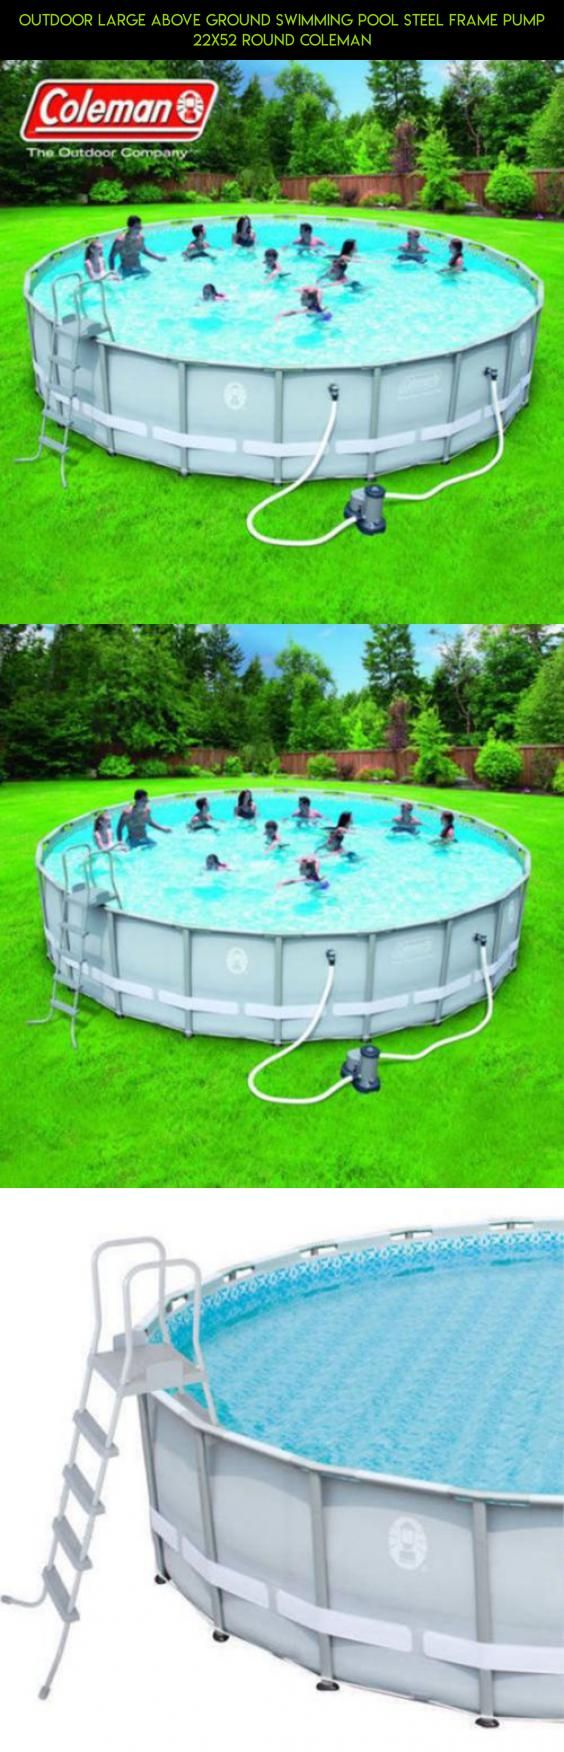 25 best ideas about above ground pool pumps on pinterest - Largest above ground swimming pool ...